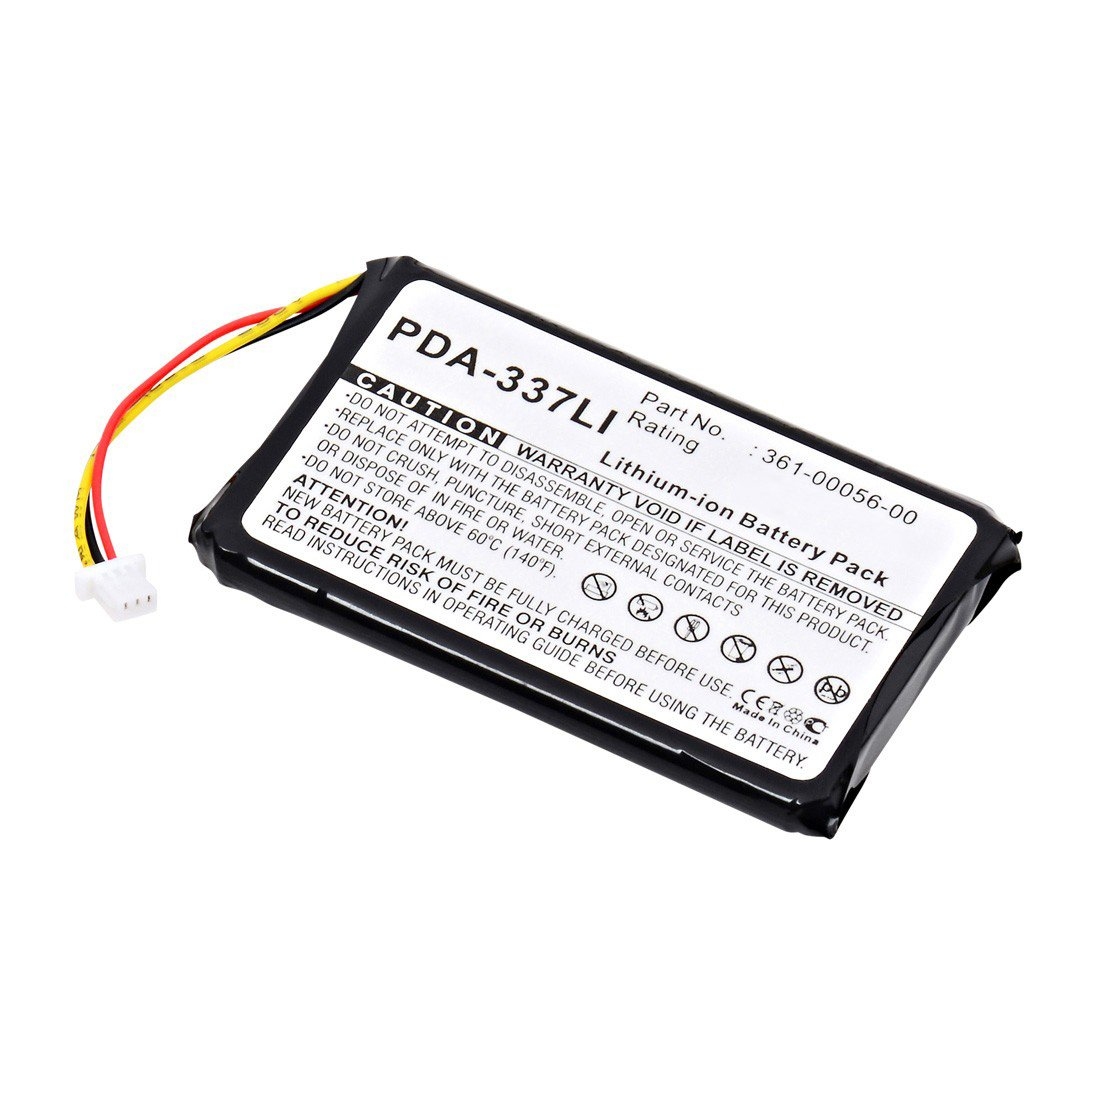 40 Battery for Garmin Nuvi 30 50 50LM 40LM